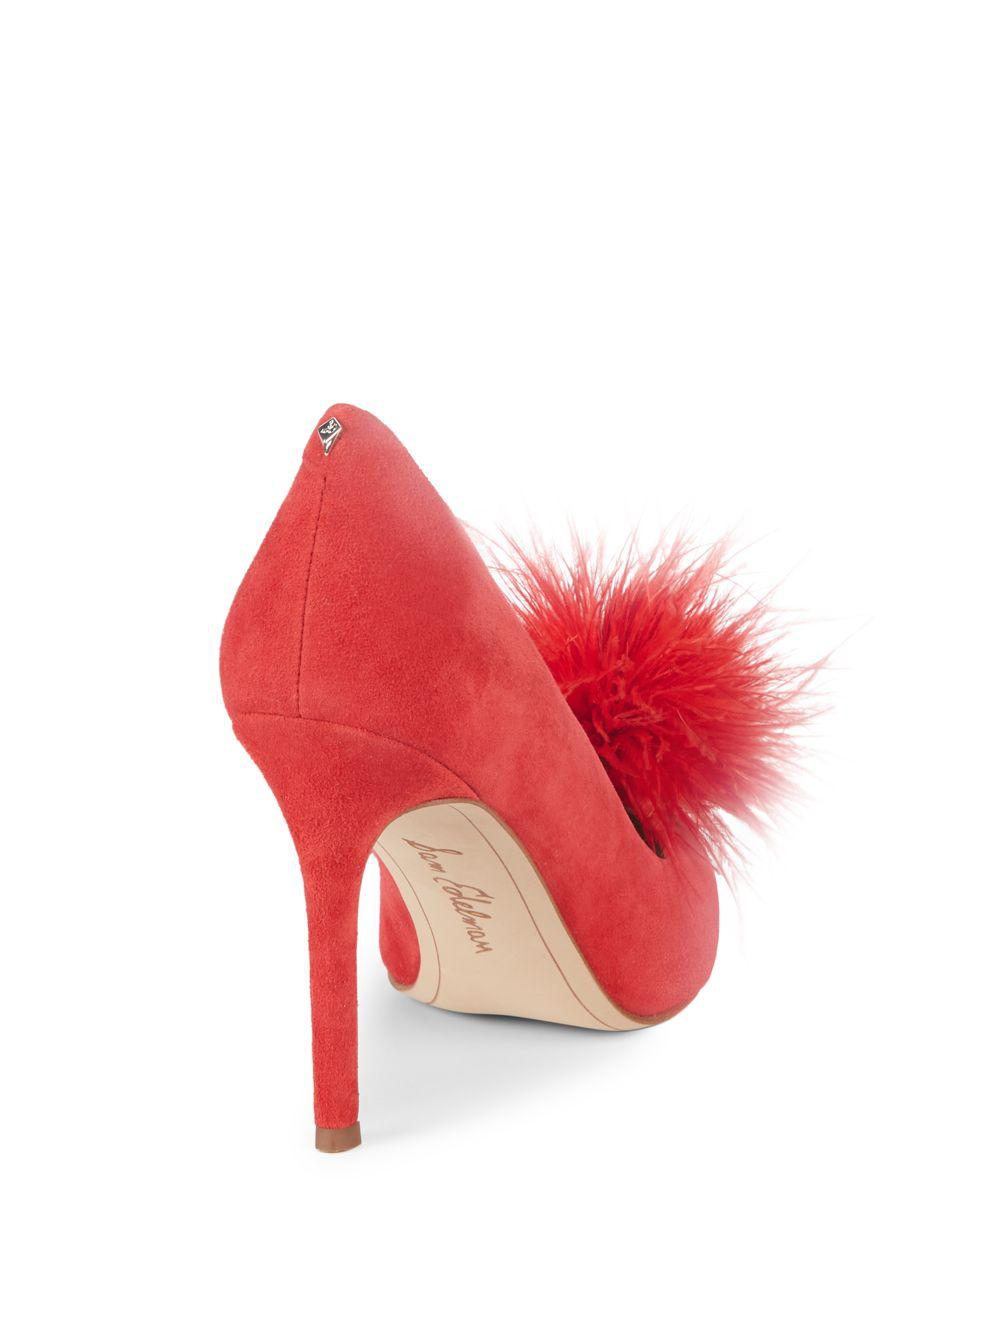 84b23ea09a06d Lyst - Sam Edelman Haide Feather-trimmed Suede Pumps in Red